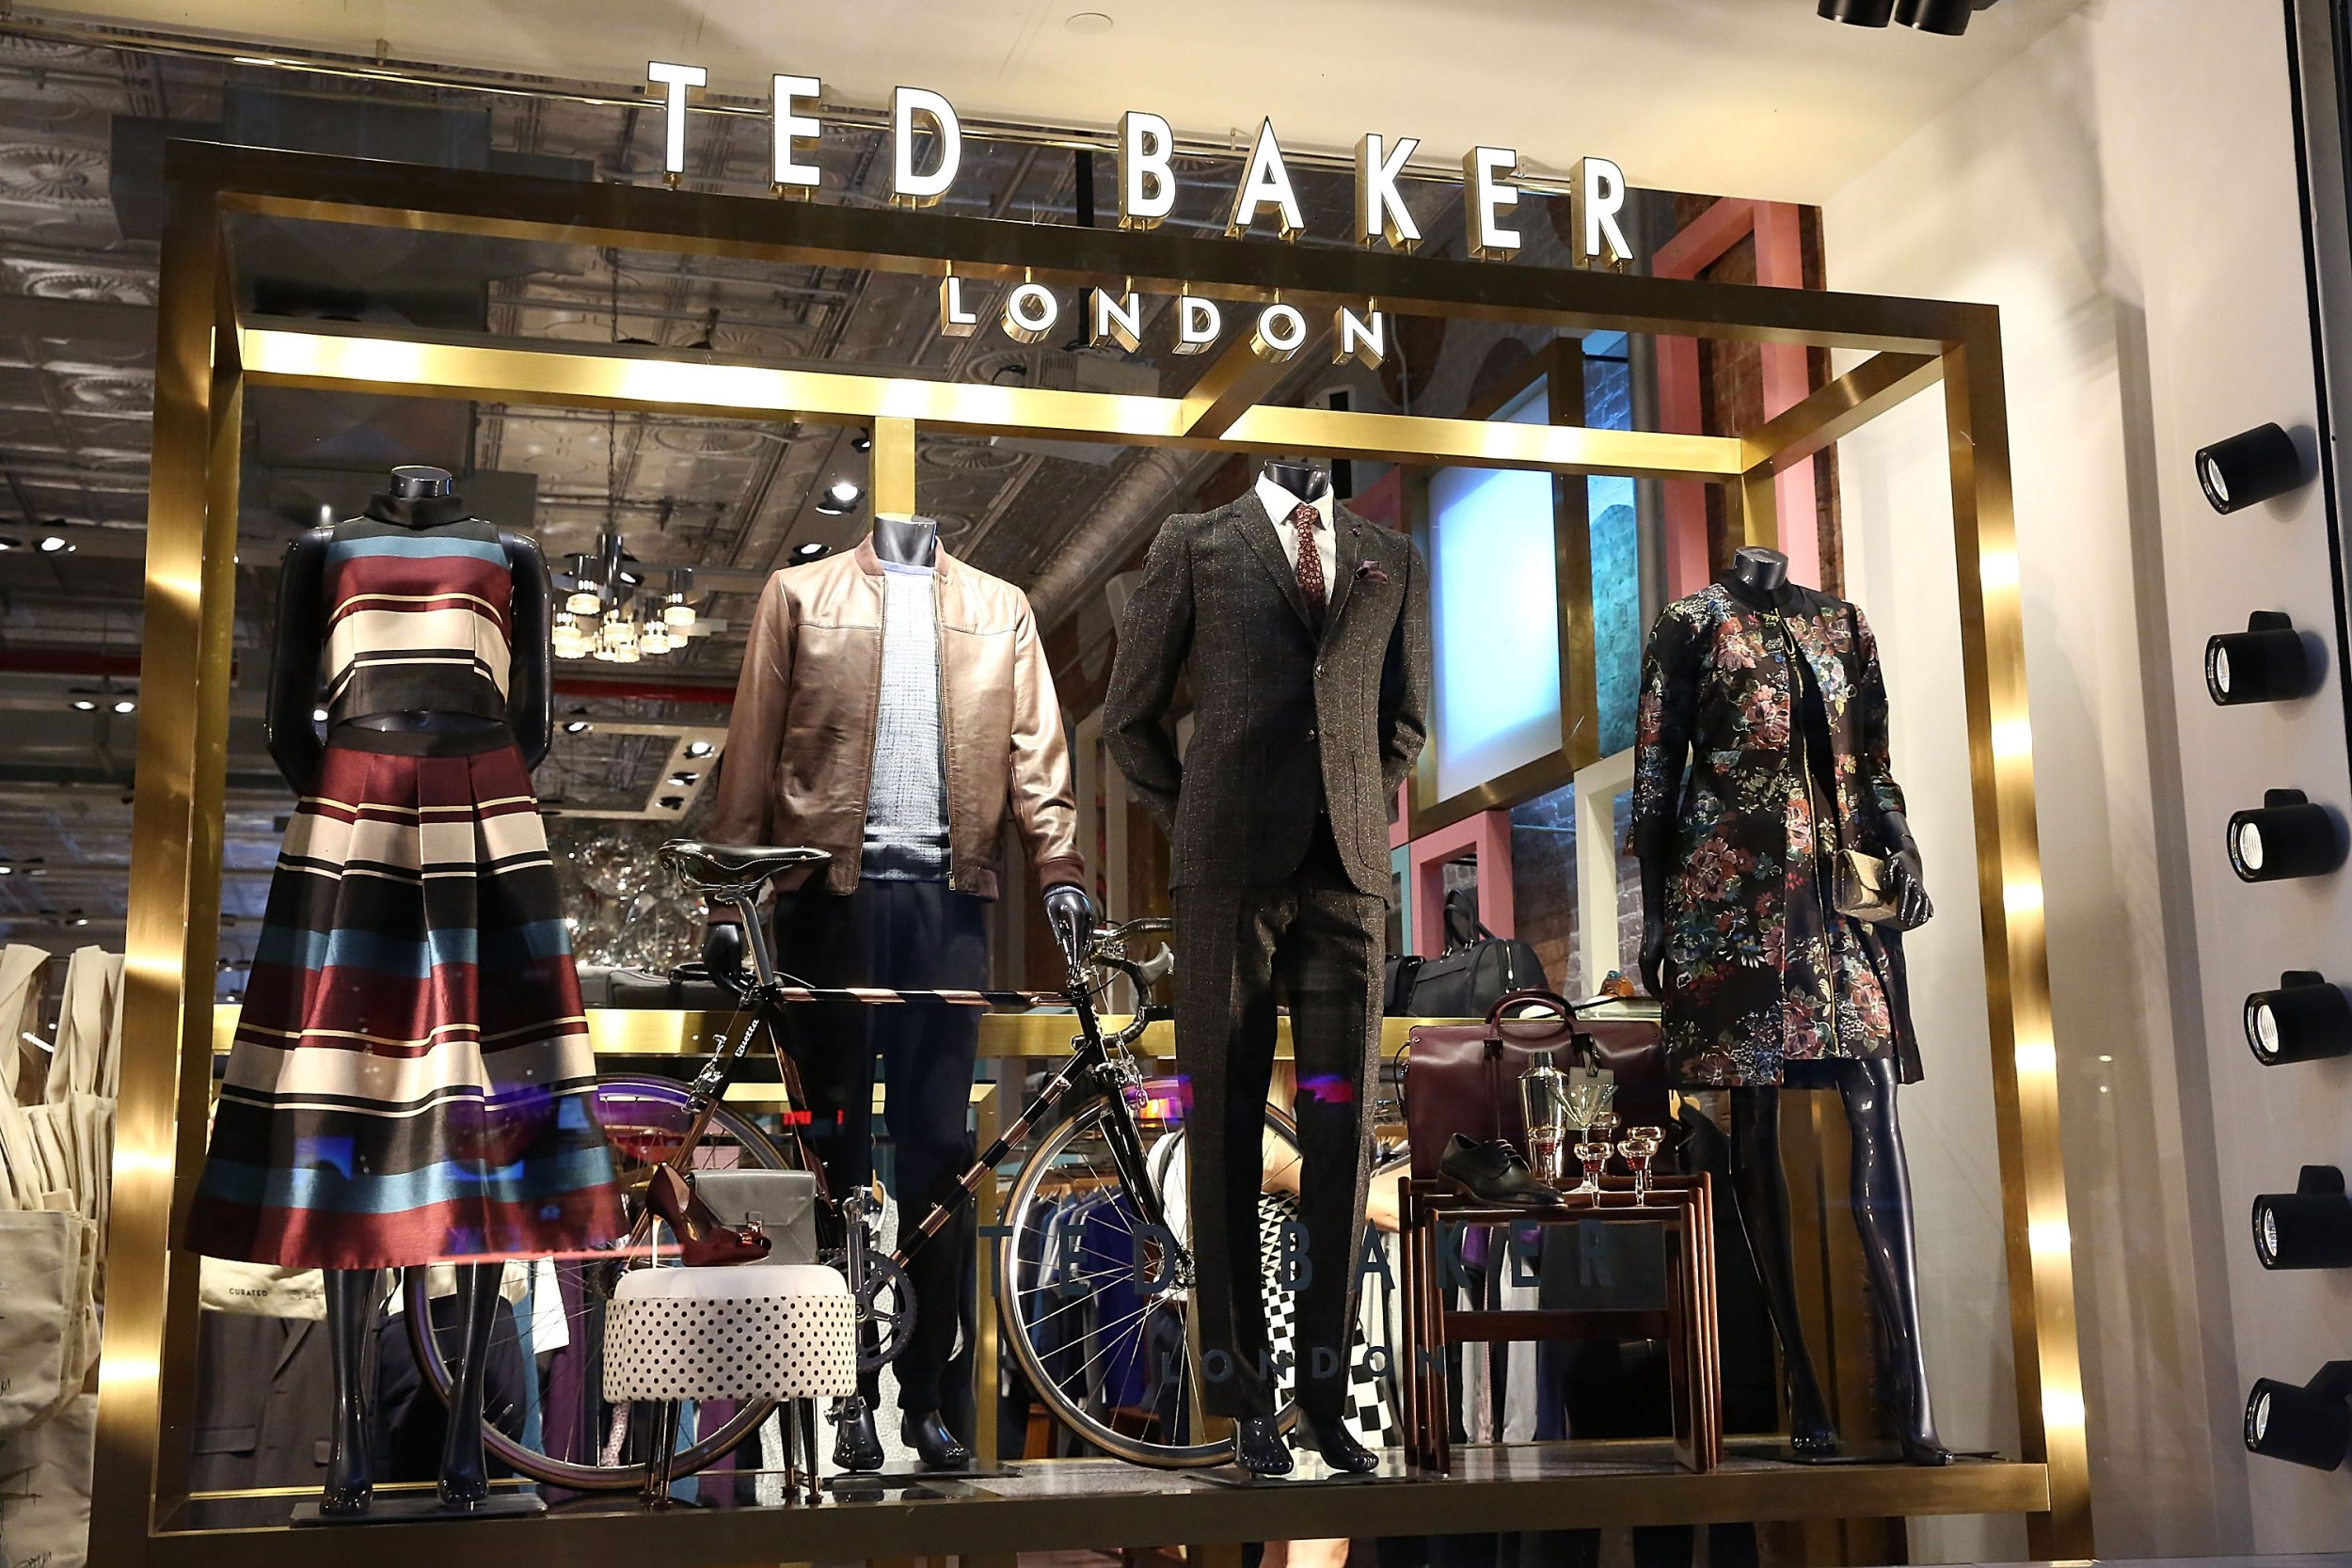 NEW YORK, NY - SEPTEMBER 22: Atmosphere inside the Ted Baker store during the Ted Baker Wooster VIP Event on September 22, 2016 in New York City. (Photo by Astrid Stawiarz/Getty Images for Ted Baker London)